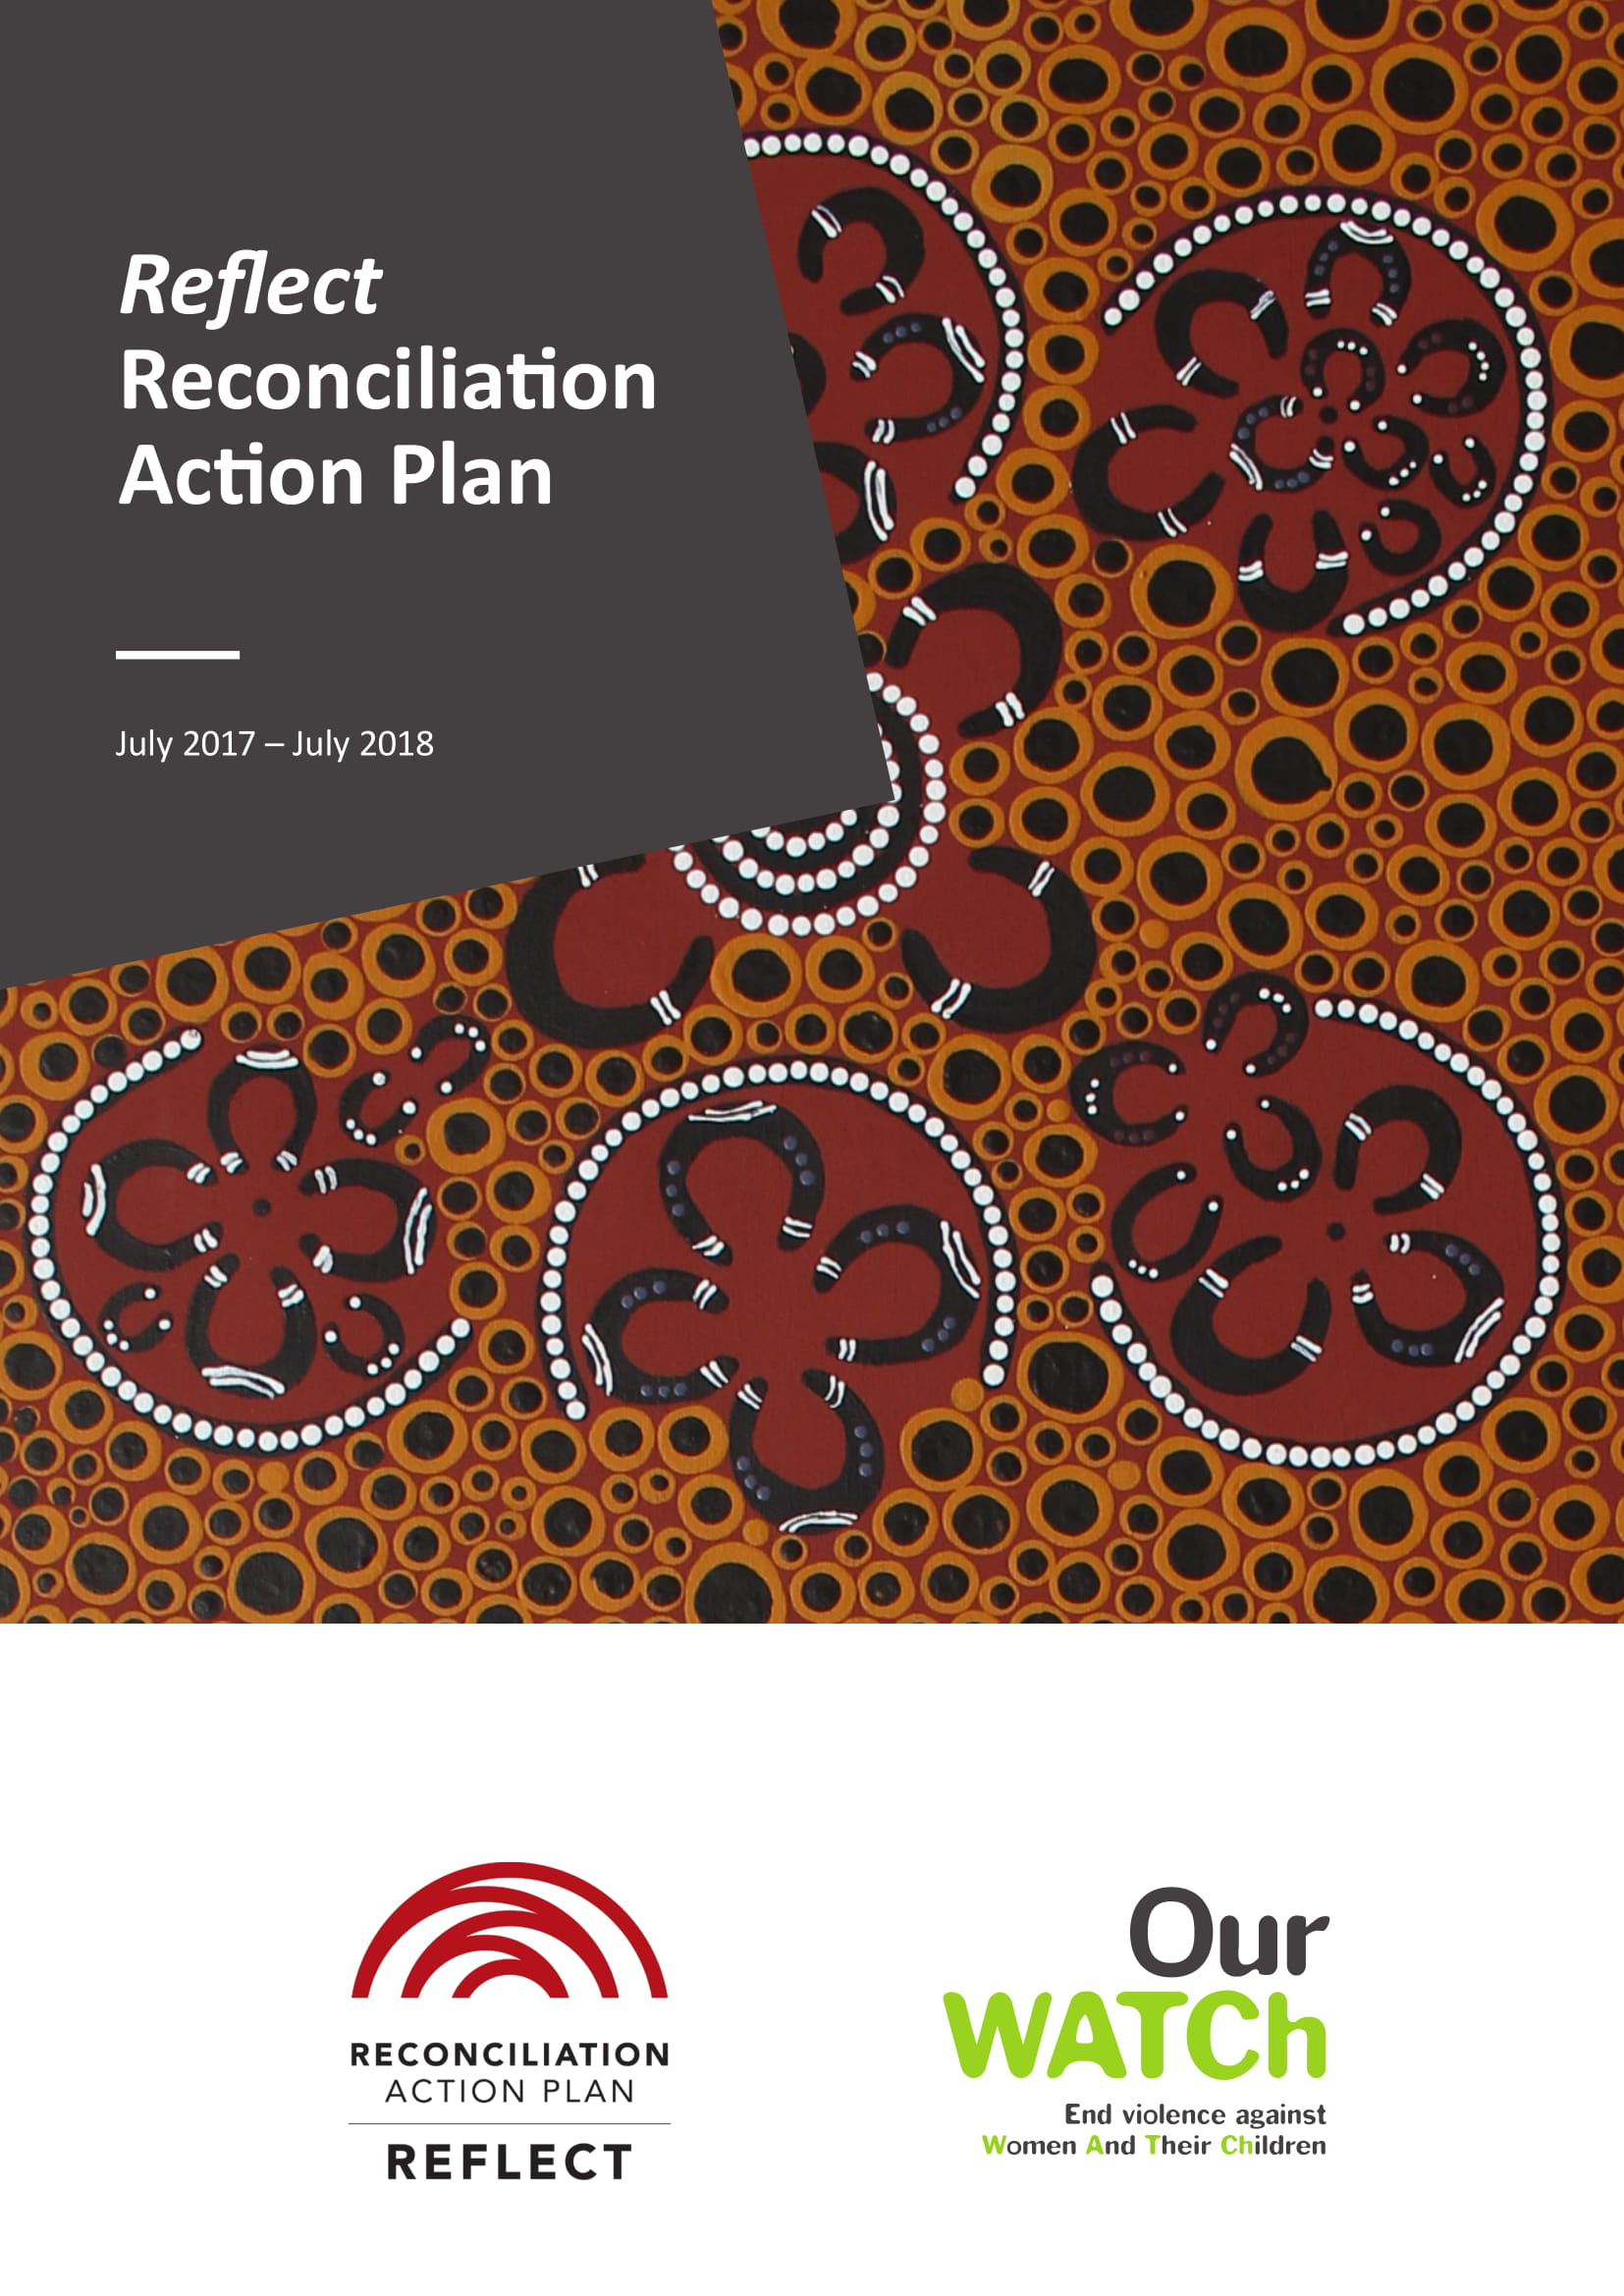 reflect reconciliation action plan example 01